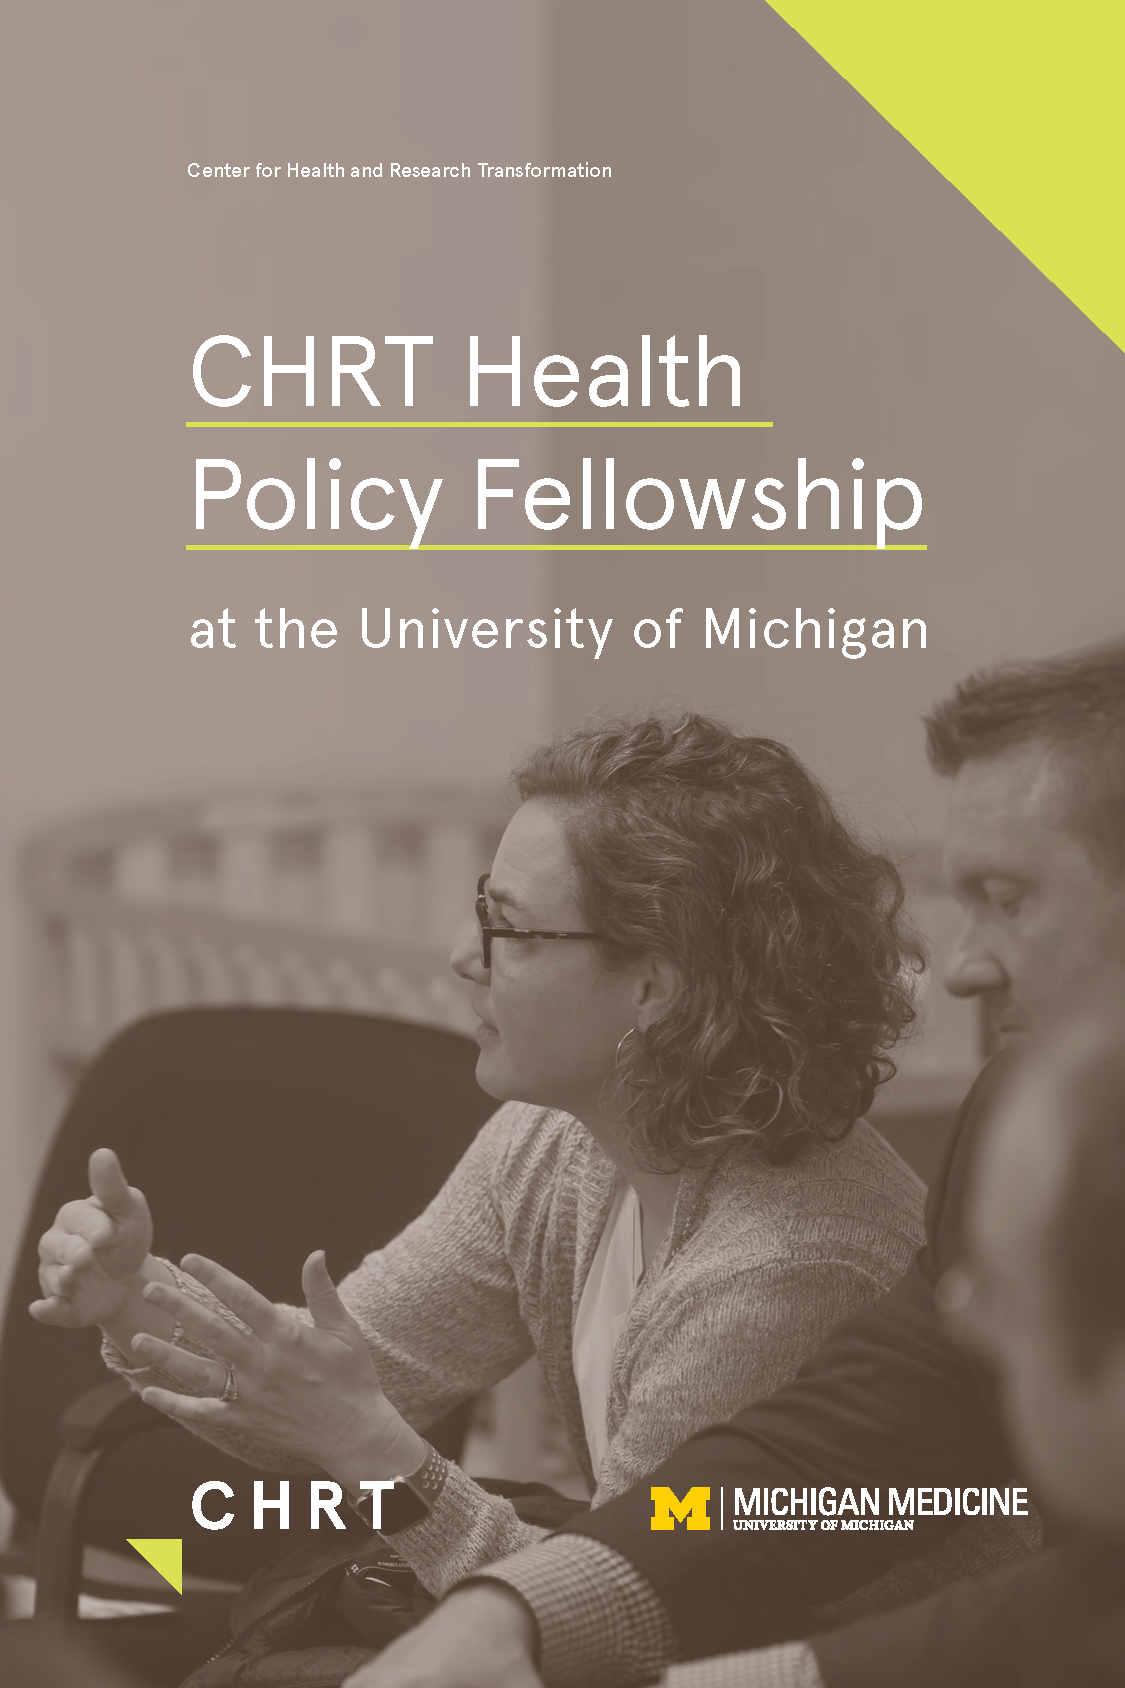 Download the 2020 CHRT Policy Fellowship brochure as a PDF